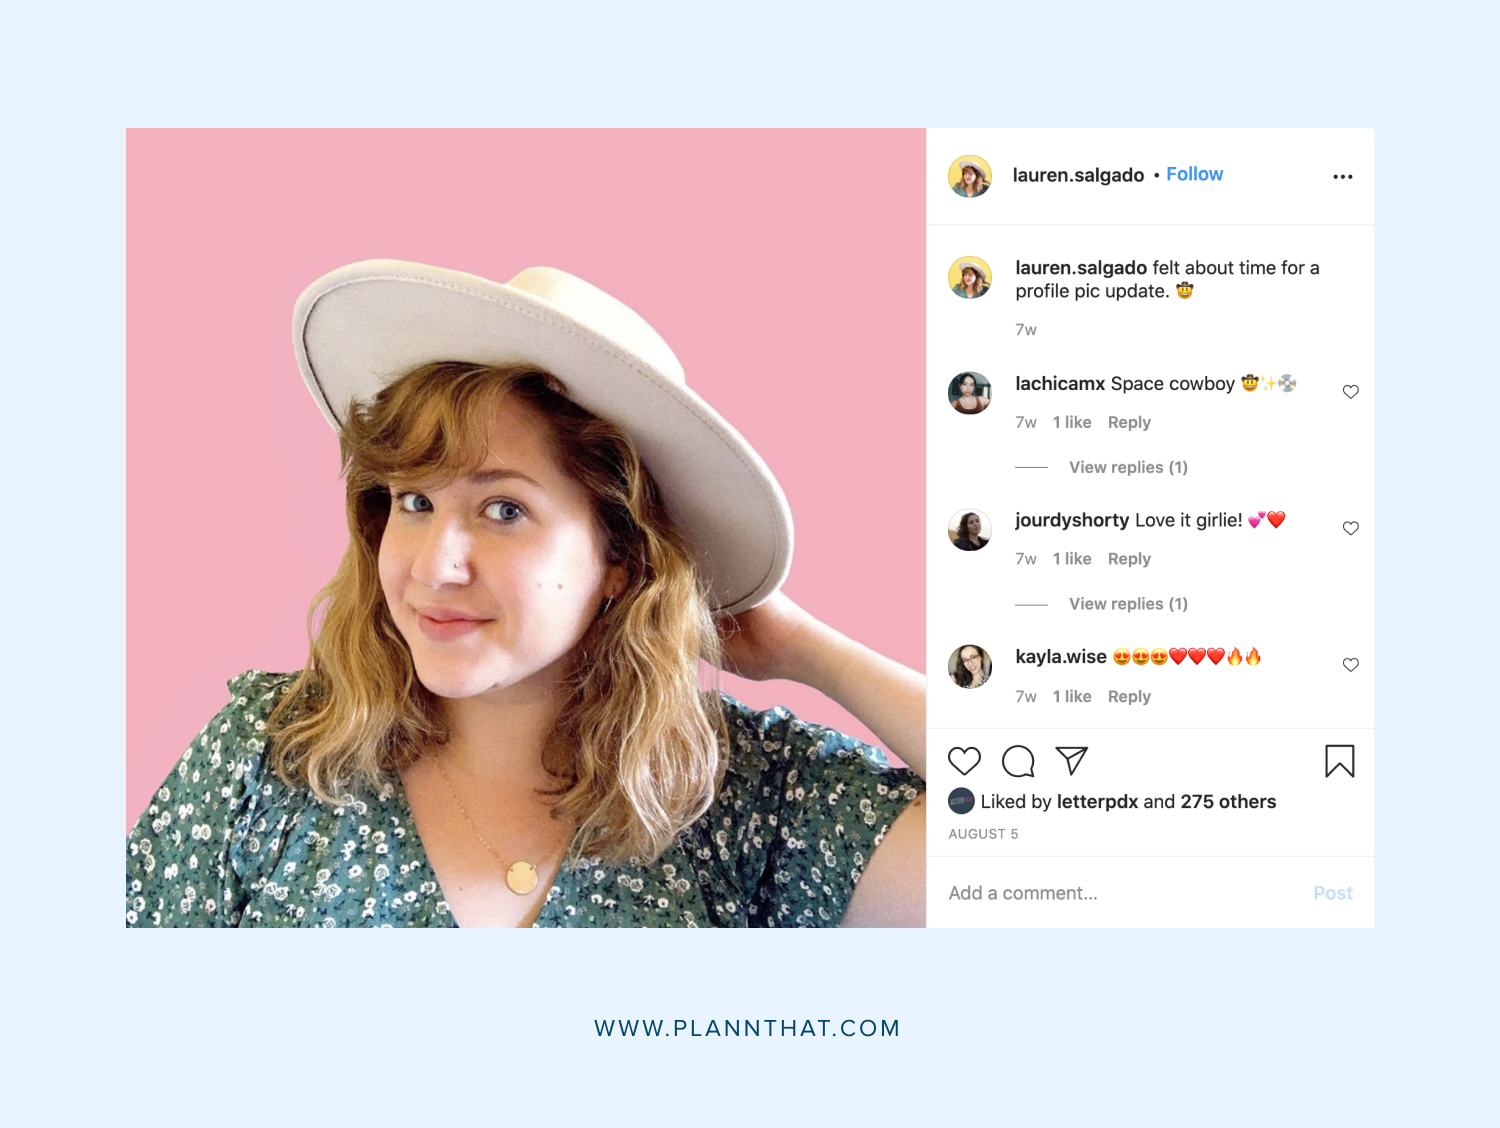 Top tips for building a beautiful Instagram aesthetic